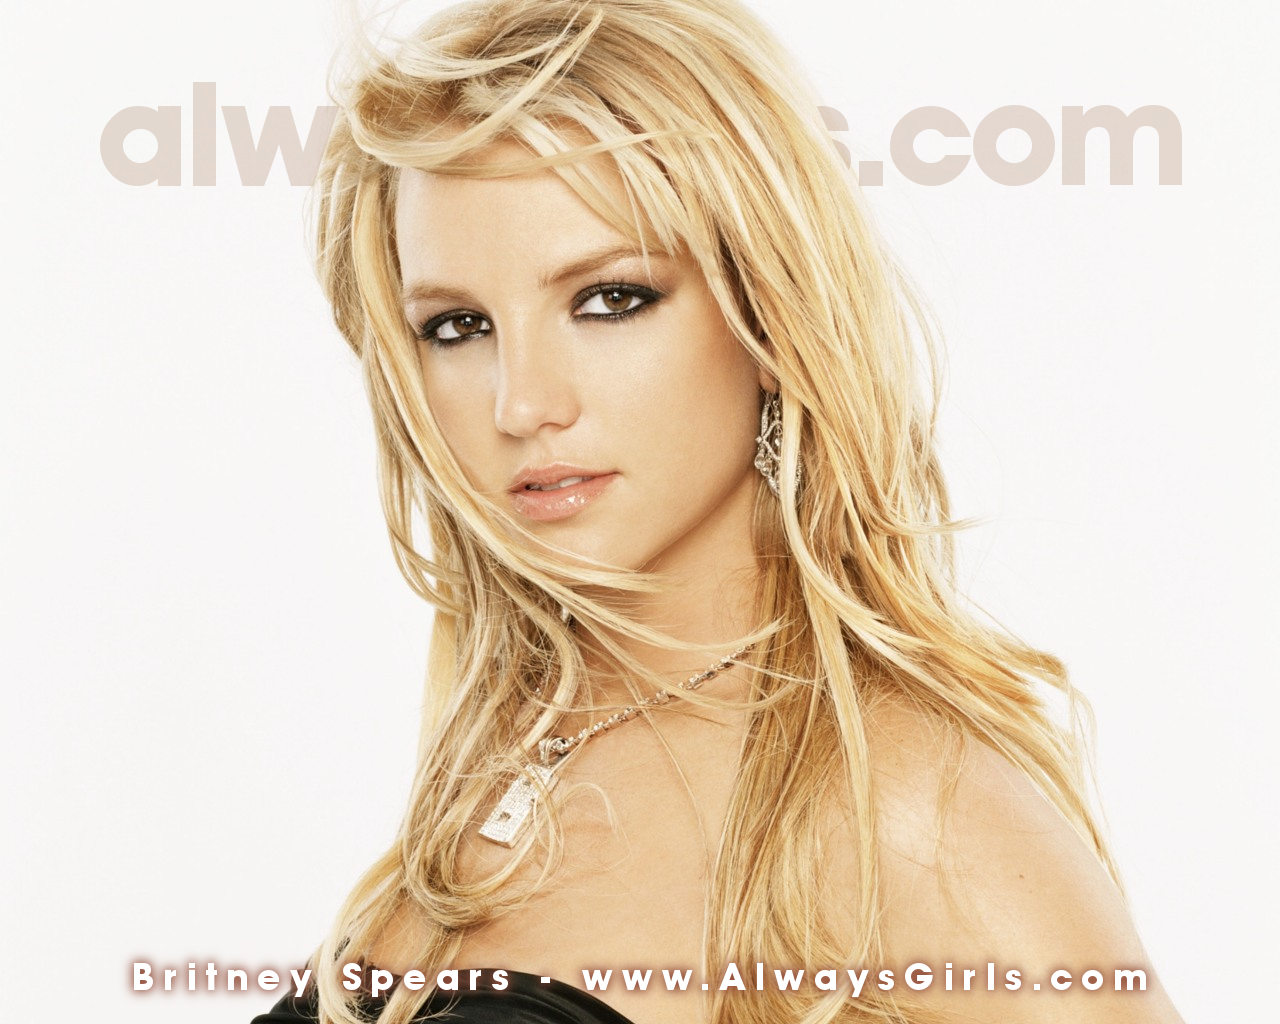 The Best Bloggers Profile Picture and Video: Britney Spears